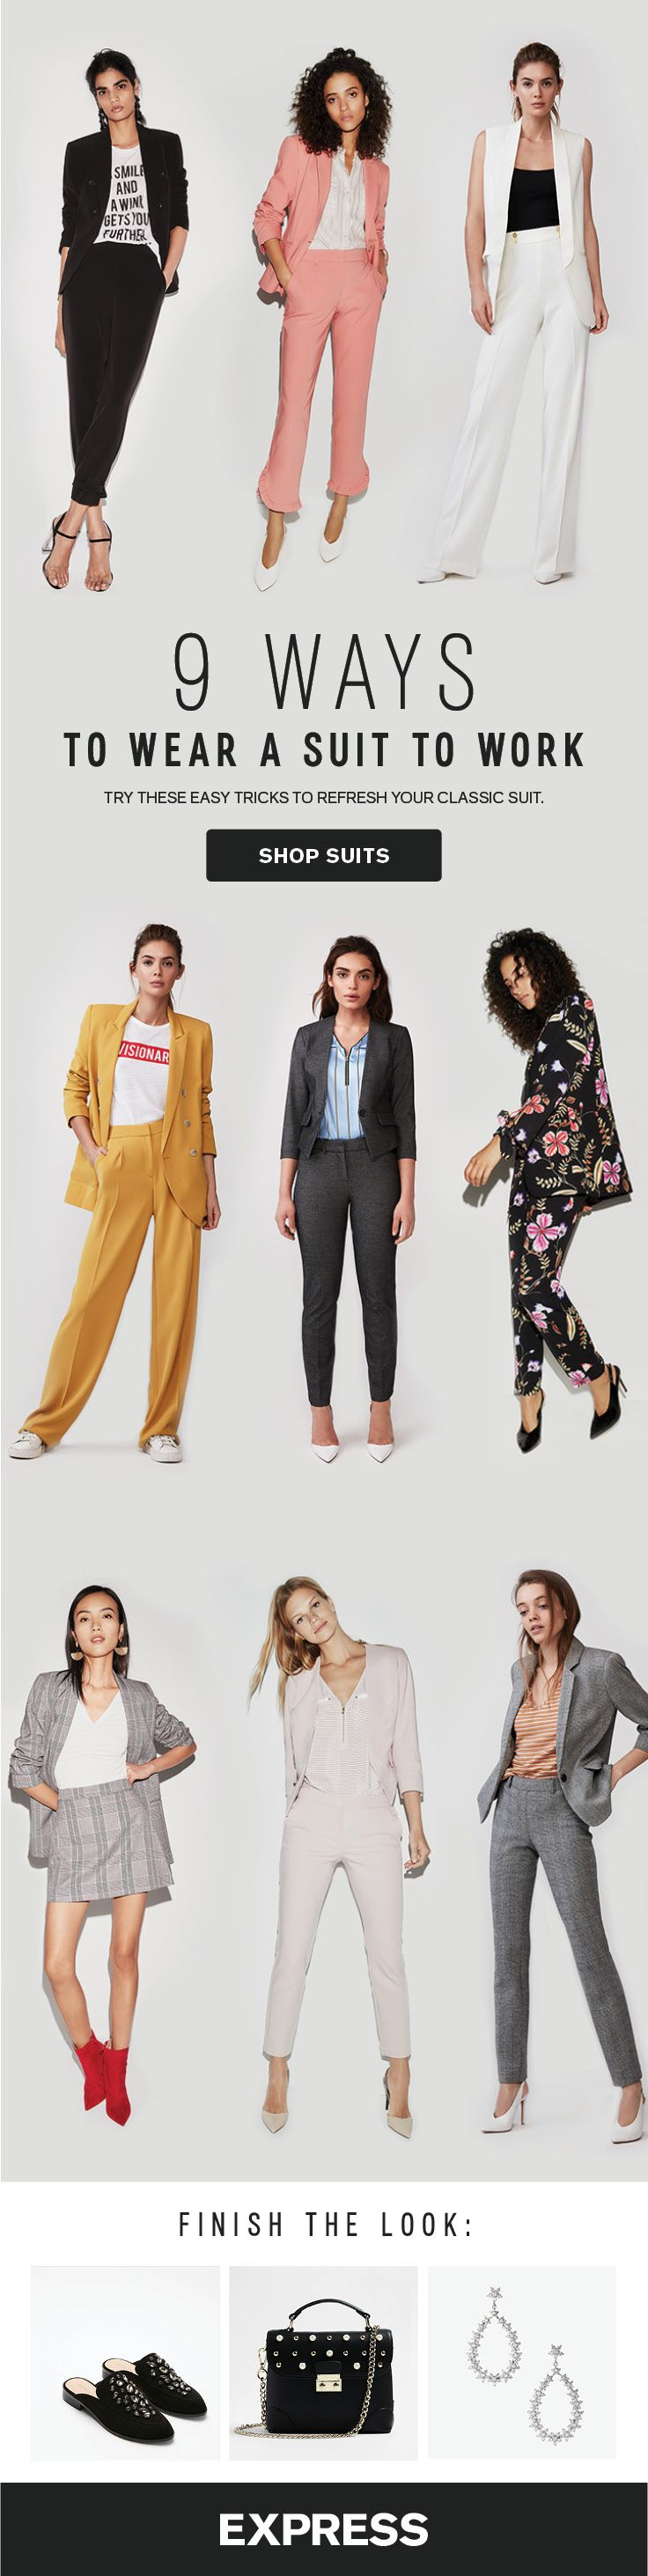 A classic women's suit is a staple for any boss babe's closet but suits for women can easily get stale. Mix it up with bright colors bold stripes and floral patterns for work outfits. Add accessories like red booties for women and statement earrings to step up your suit style this spring.